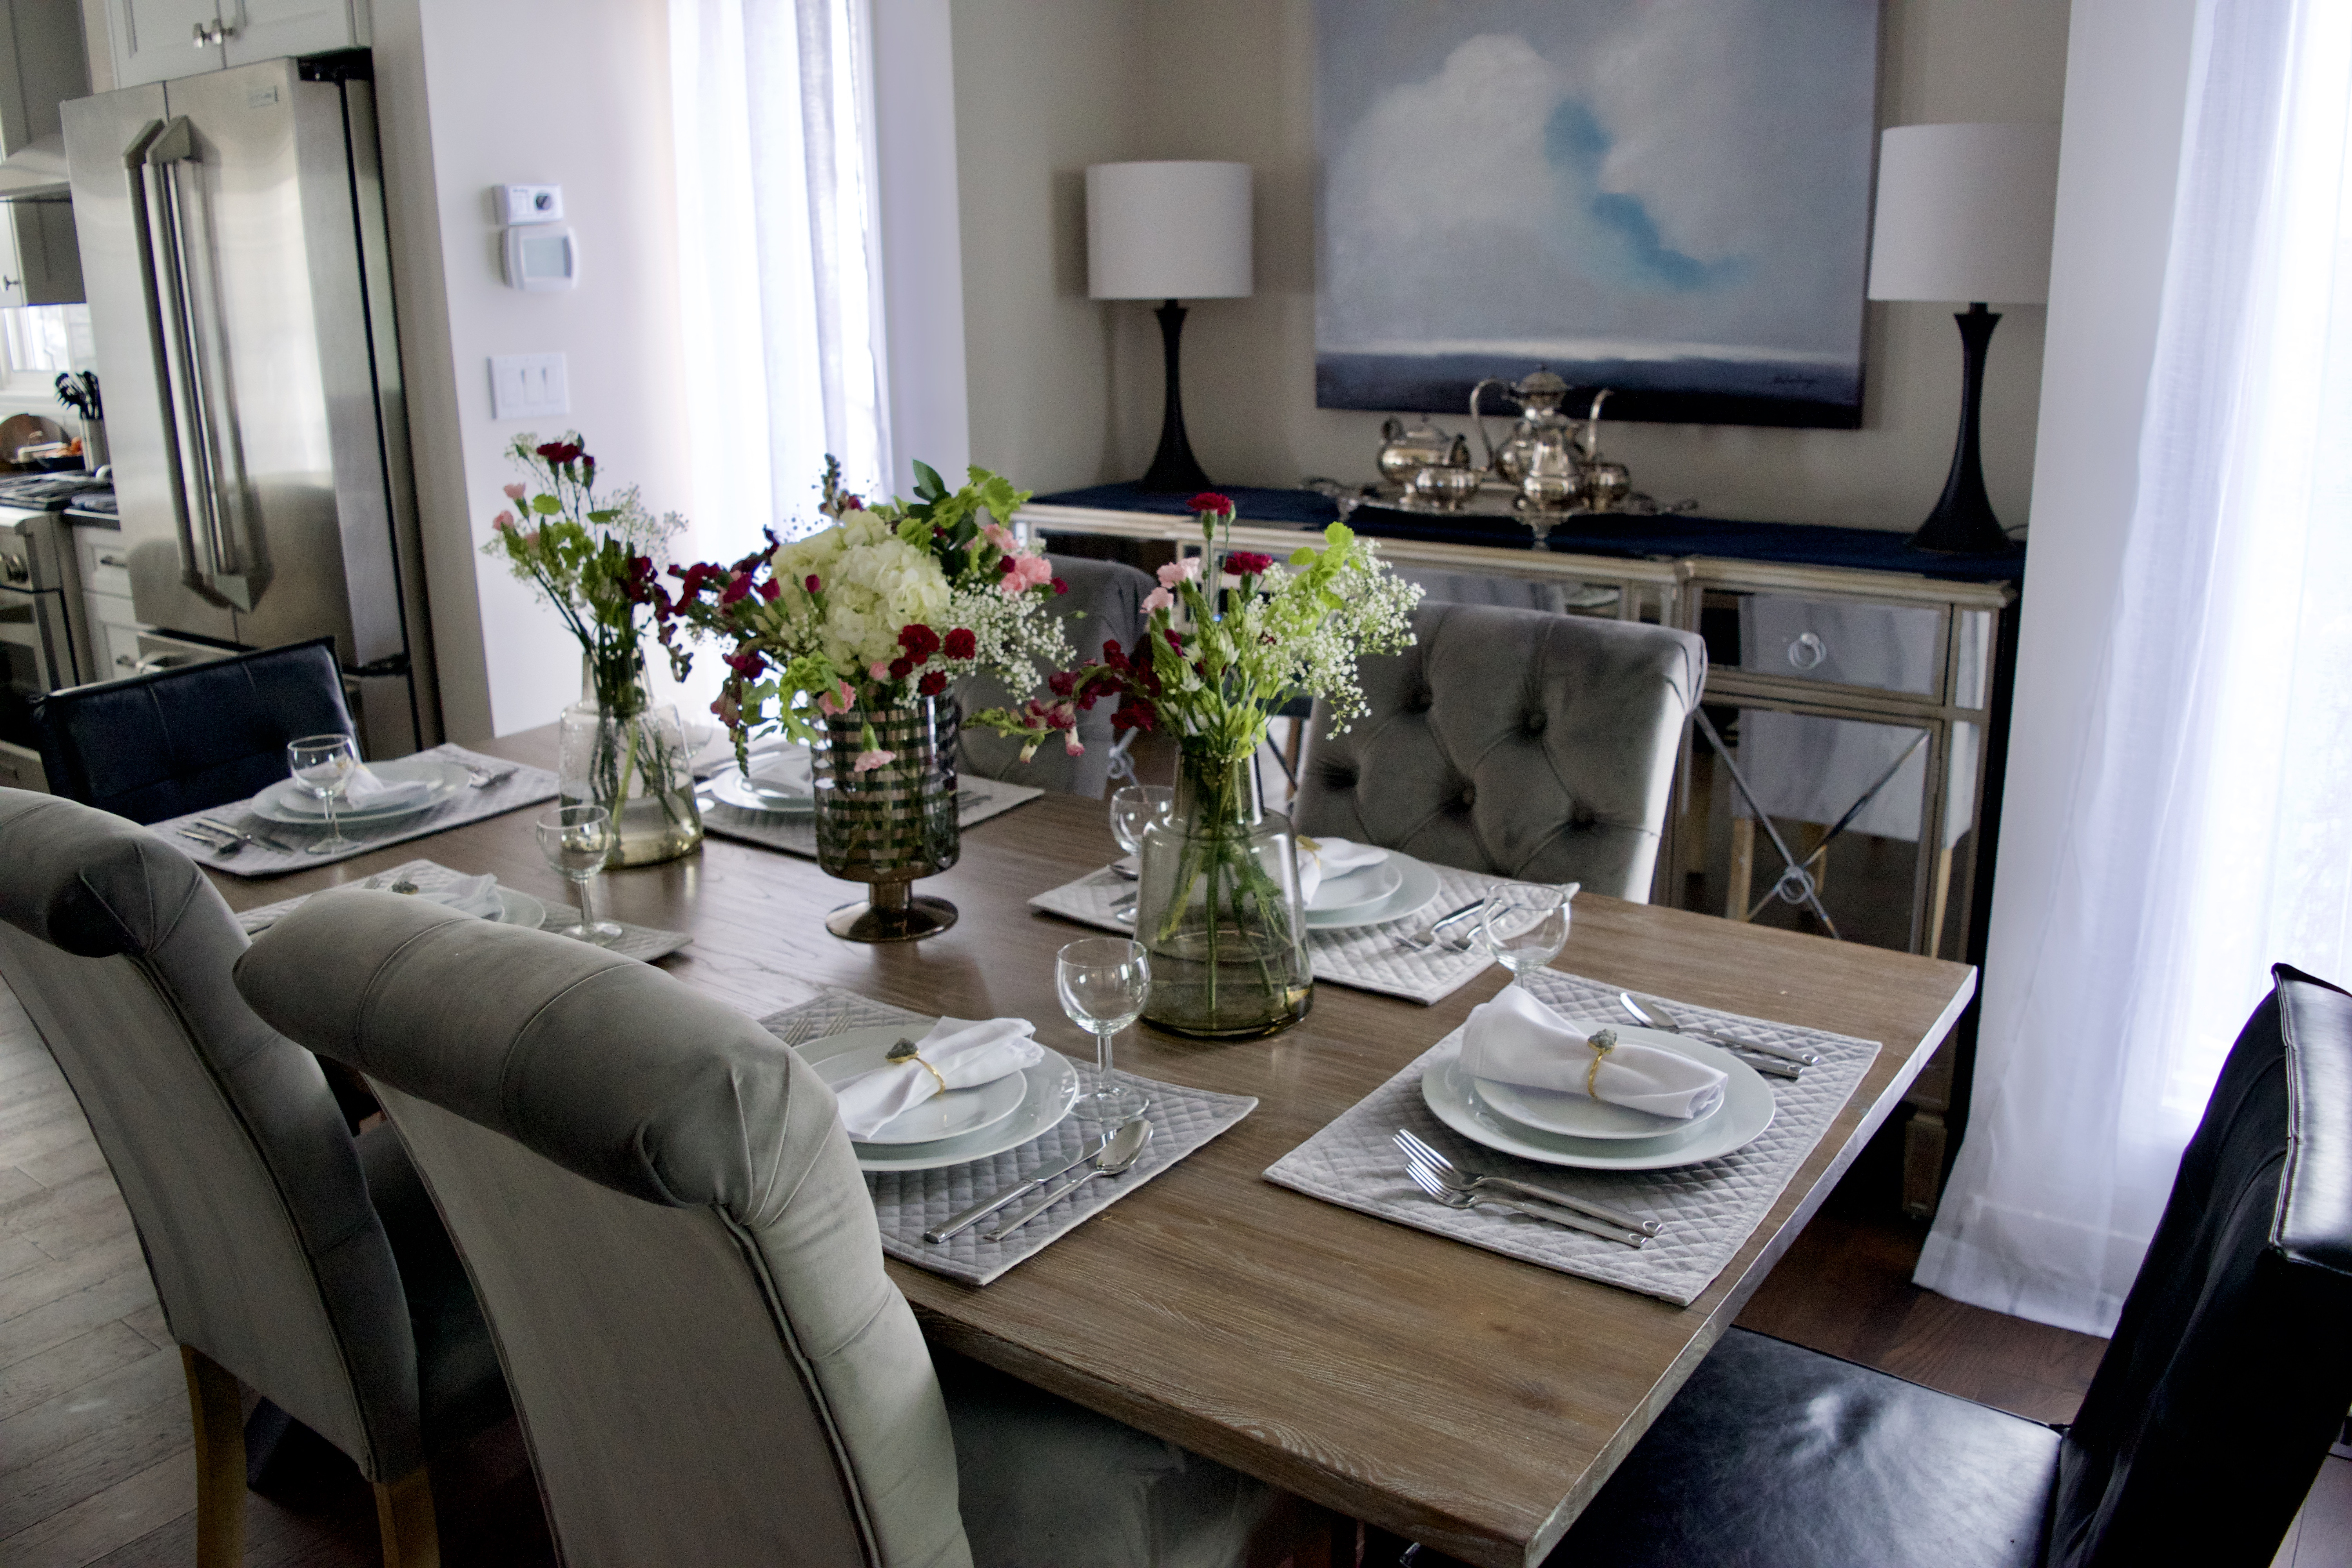 style a decorating designer interior guide com gettyimages in to contemporary home